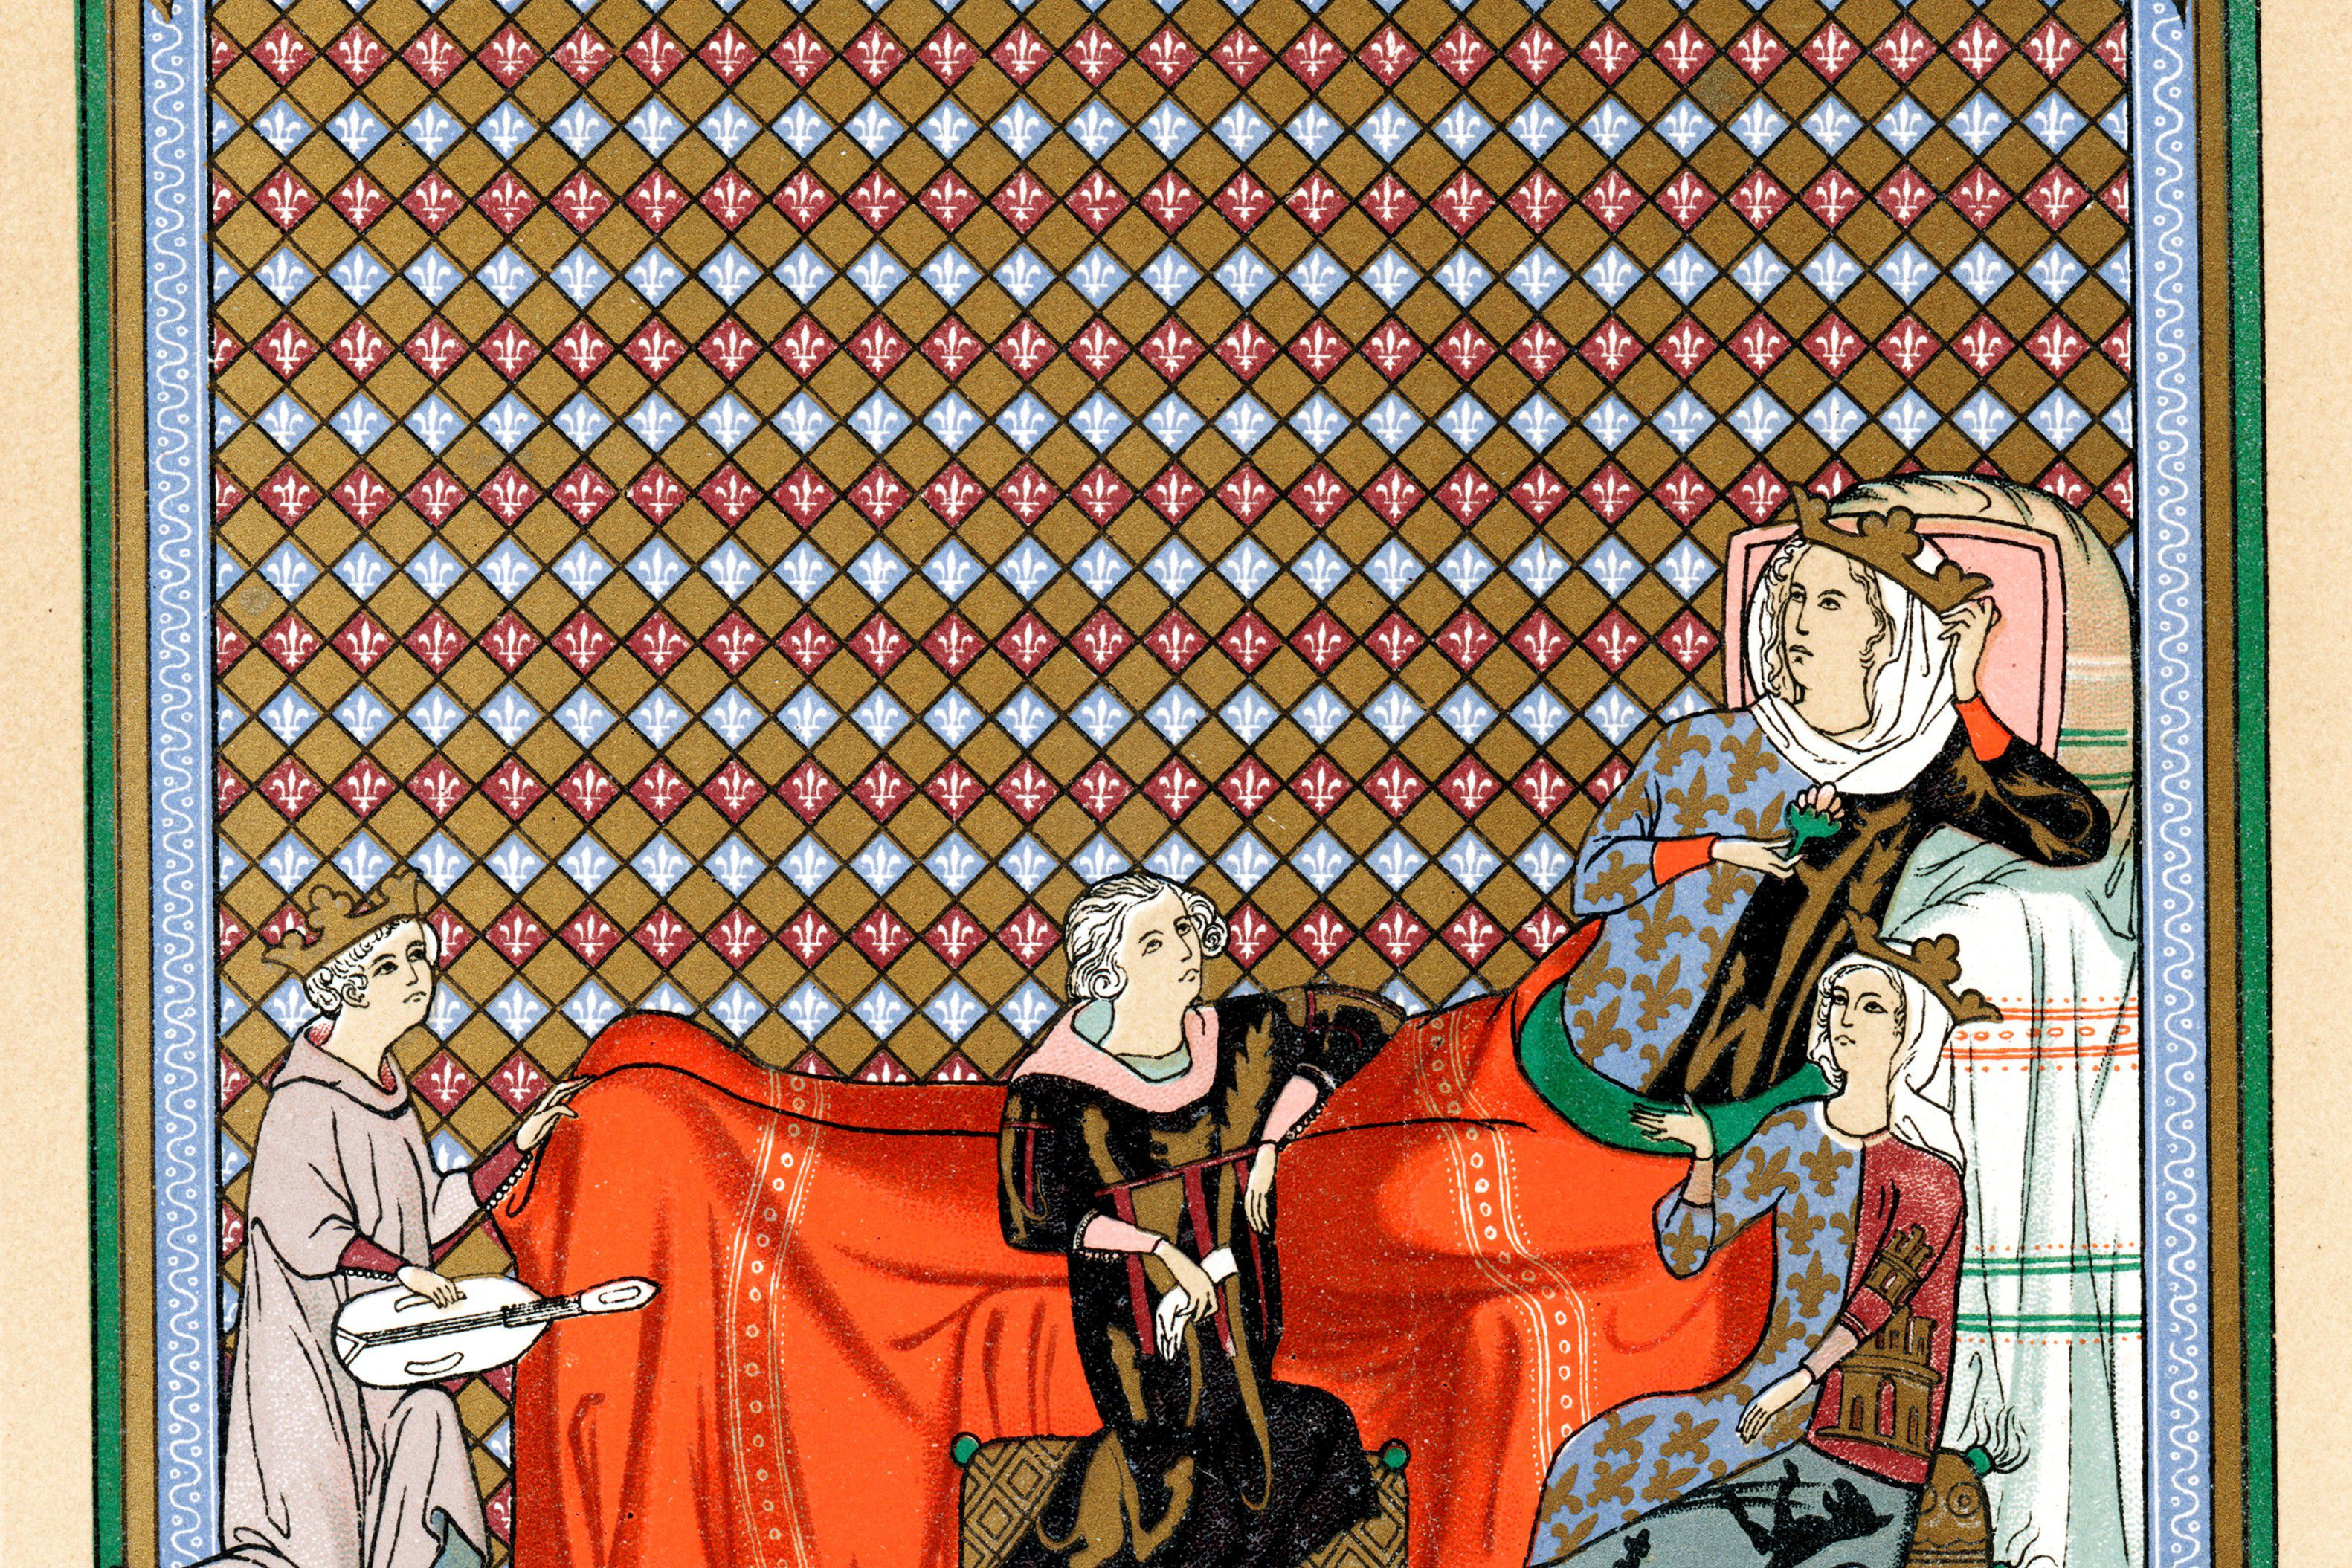 Minstrel, 13th century, reading to Blanche of Castile, Queen of France and granddaughter of Eleanor of Aquitaine, and to Mathilde de Brabant, Countess of Artois